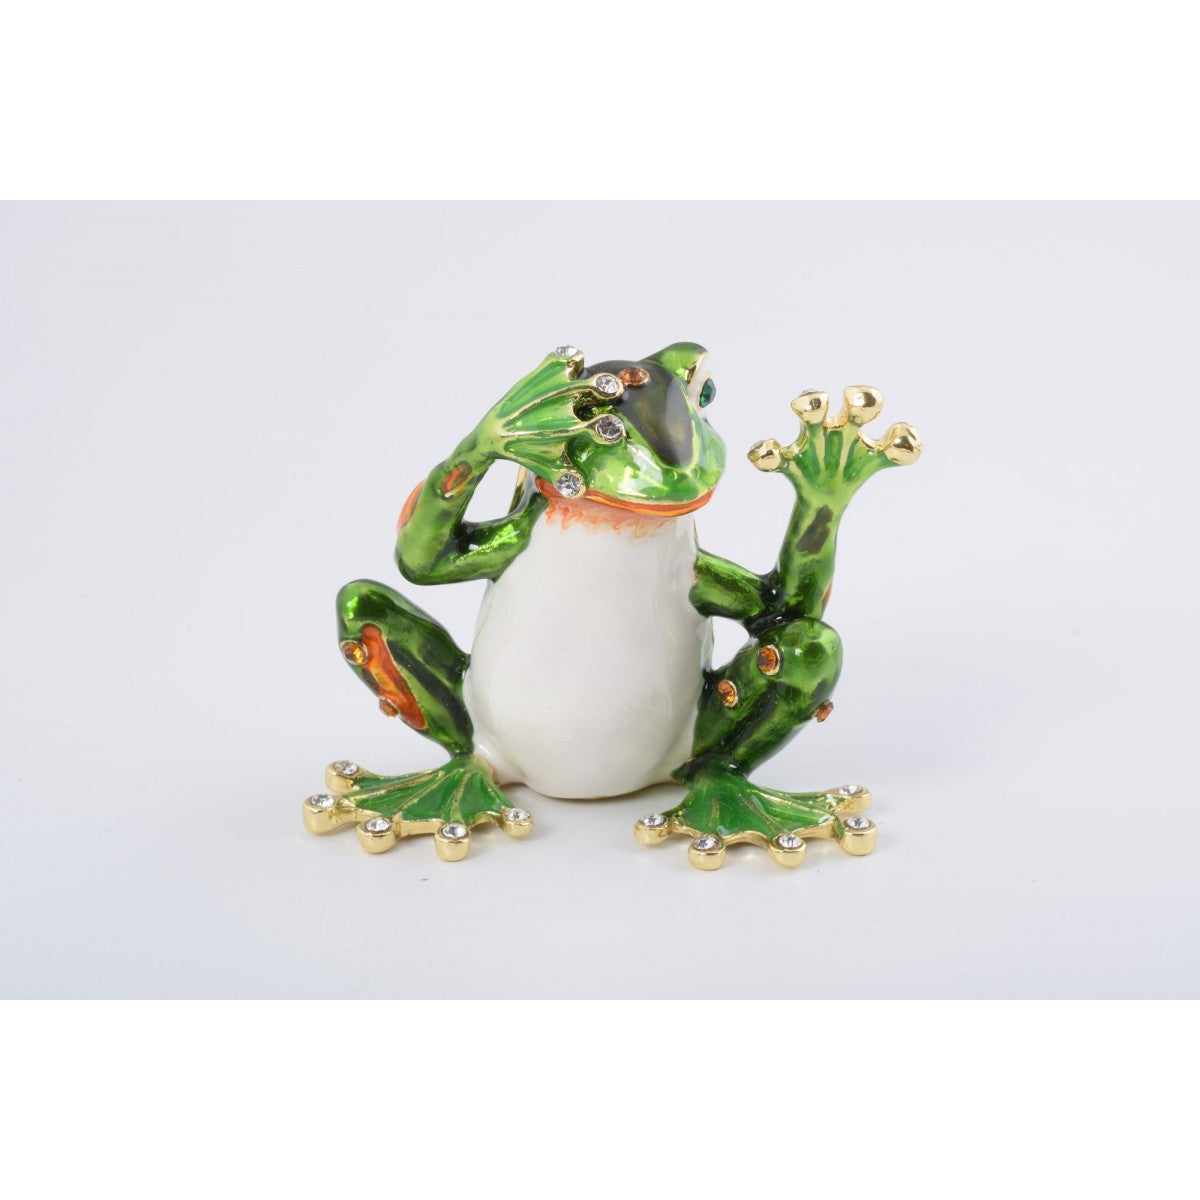 Green Frog See No Evil Trinket Box by Keren Kopal